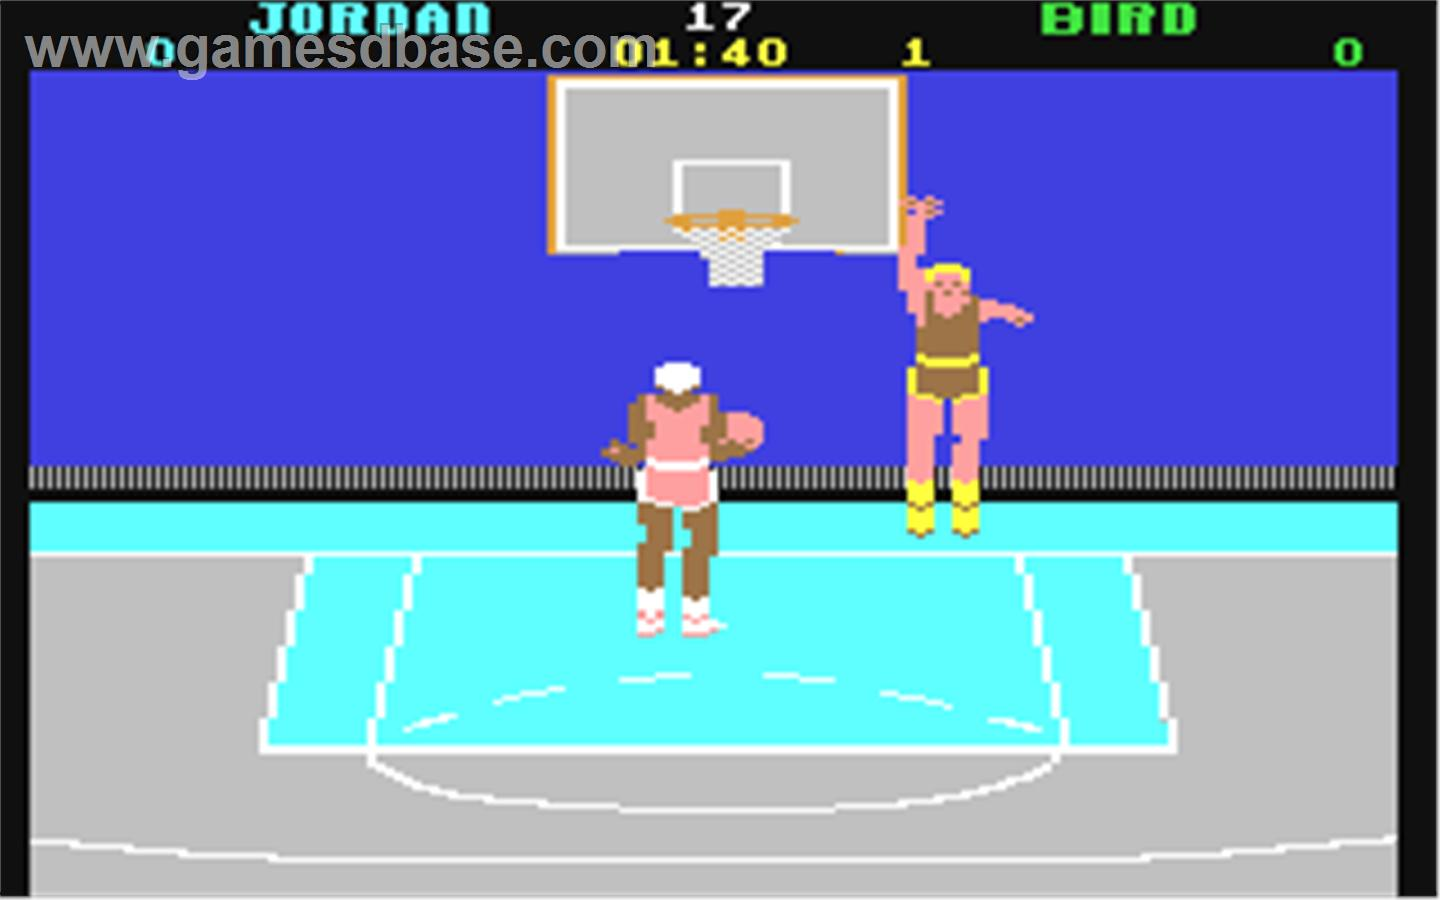 Jordan didn't even have a ring when this game came out.